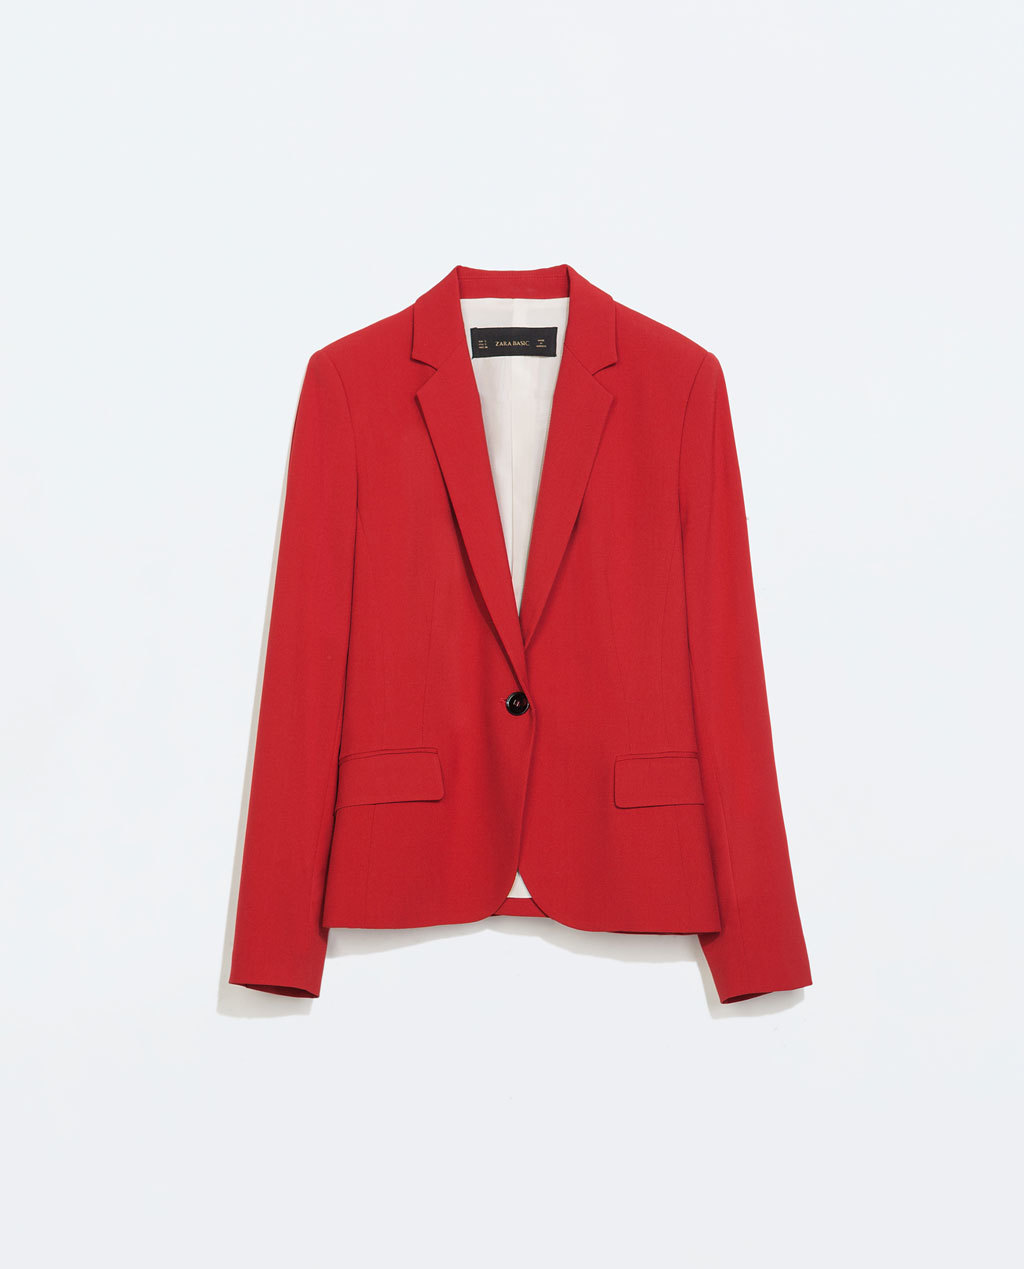 Single Button Blazer - pattern: plain; style: single breasted blazer; length: below the bottom; collar: standard lapel/rever collar; predominant colour: true red; occasions: casual, evening, creative work; fit: tailored/fitted; fibres: polyester/polyamide - mix; sleeve length: long sleeve; sleeve style: standard; collar break: medium; texture group: woven light midweight; trends: zesty shades, outerwear chic; season: a/w 2014